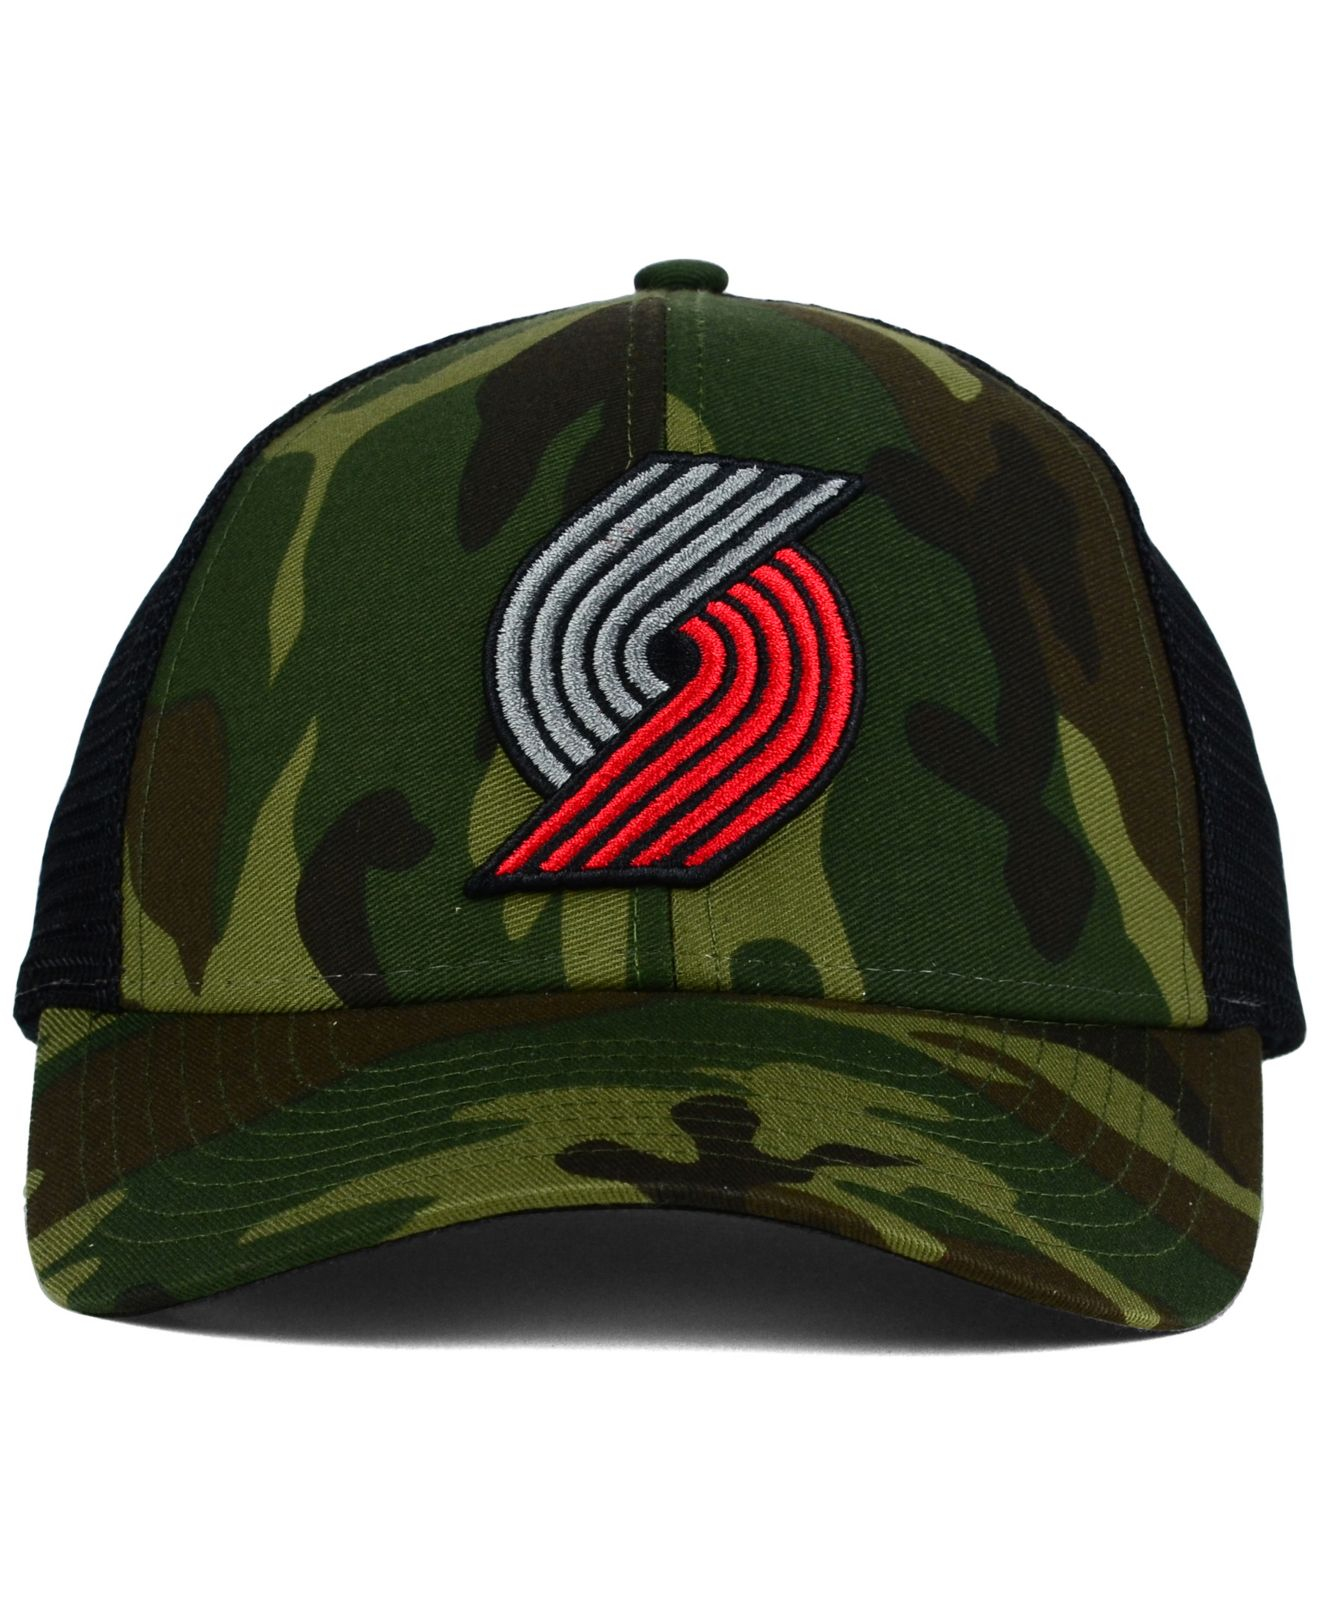 f73770fac5a58 ... reduced lyst adidas portland trail blazers camo trucker cap in green  for men bf501 6ef66